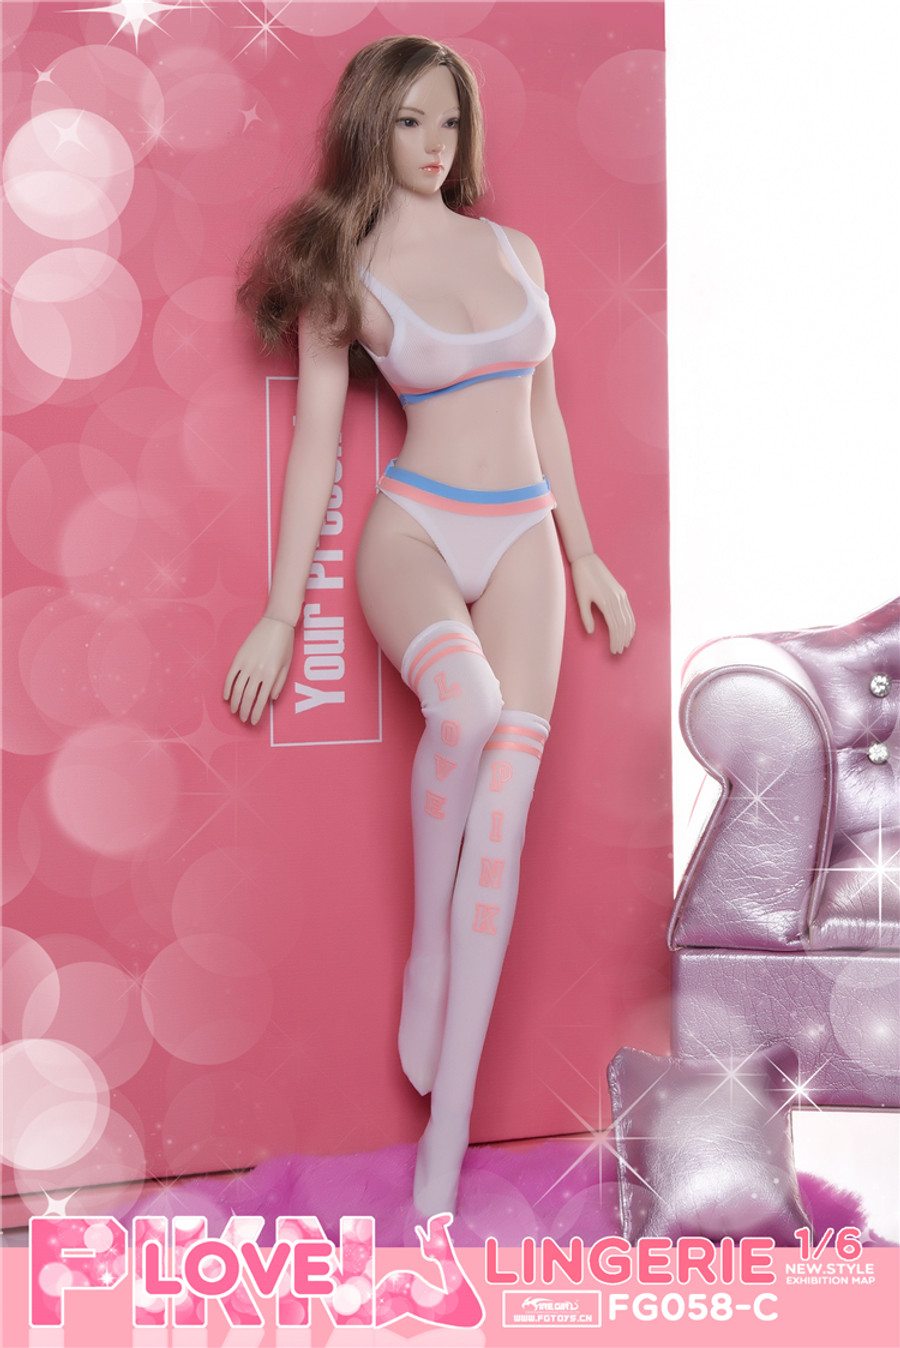 Fire Girl Toys - Sports Clothing Set